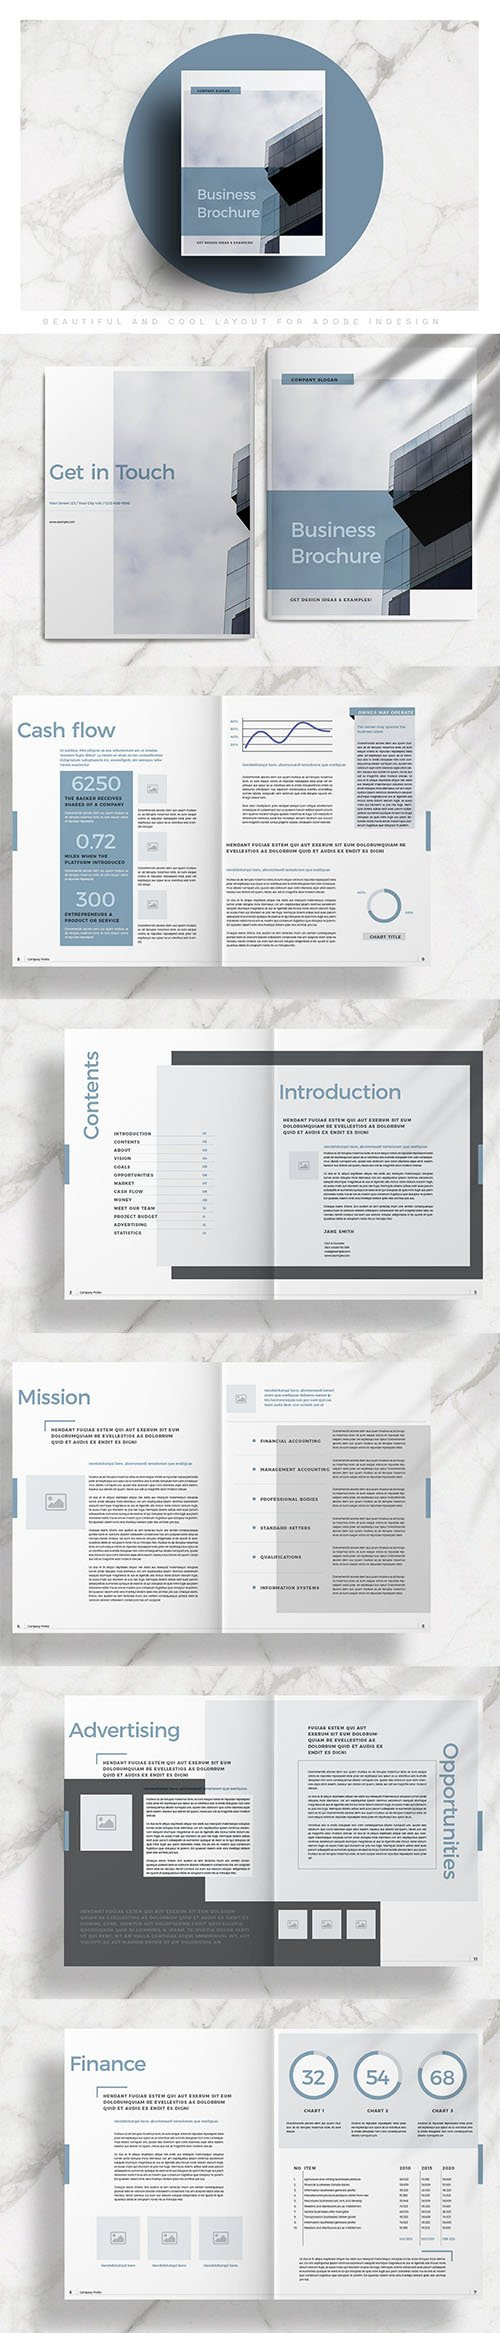 Business Brochure Layout INDD